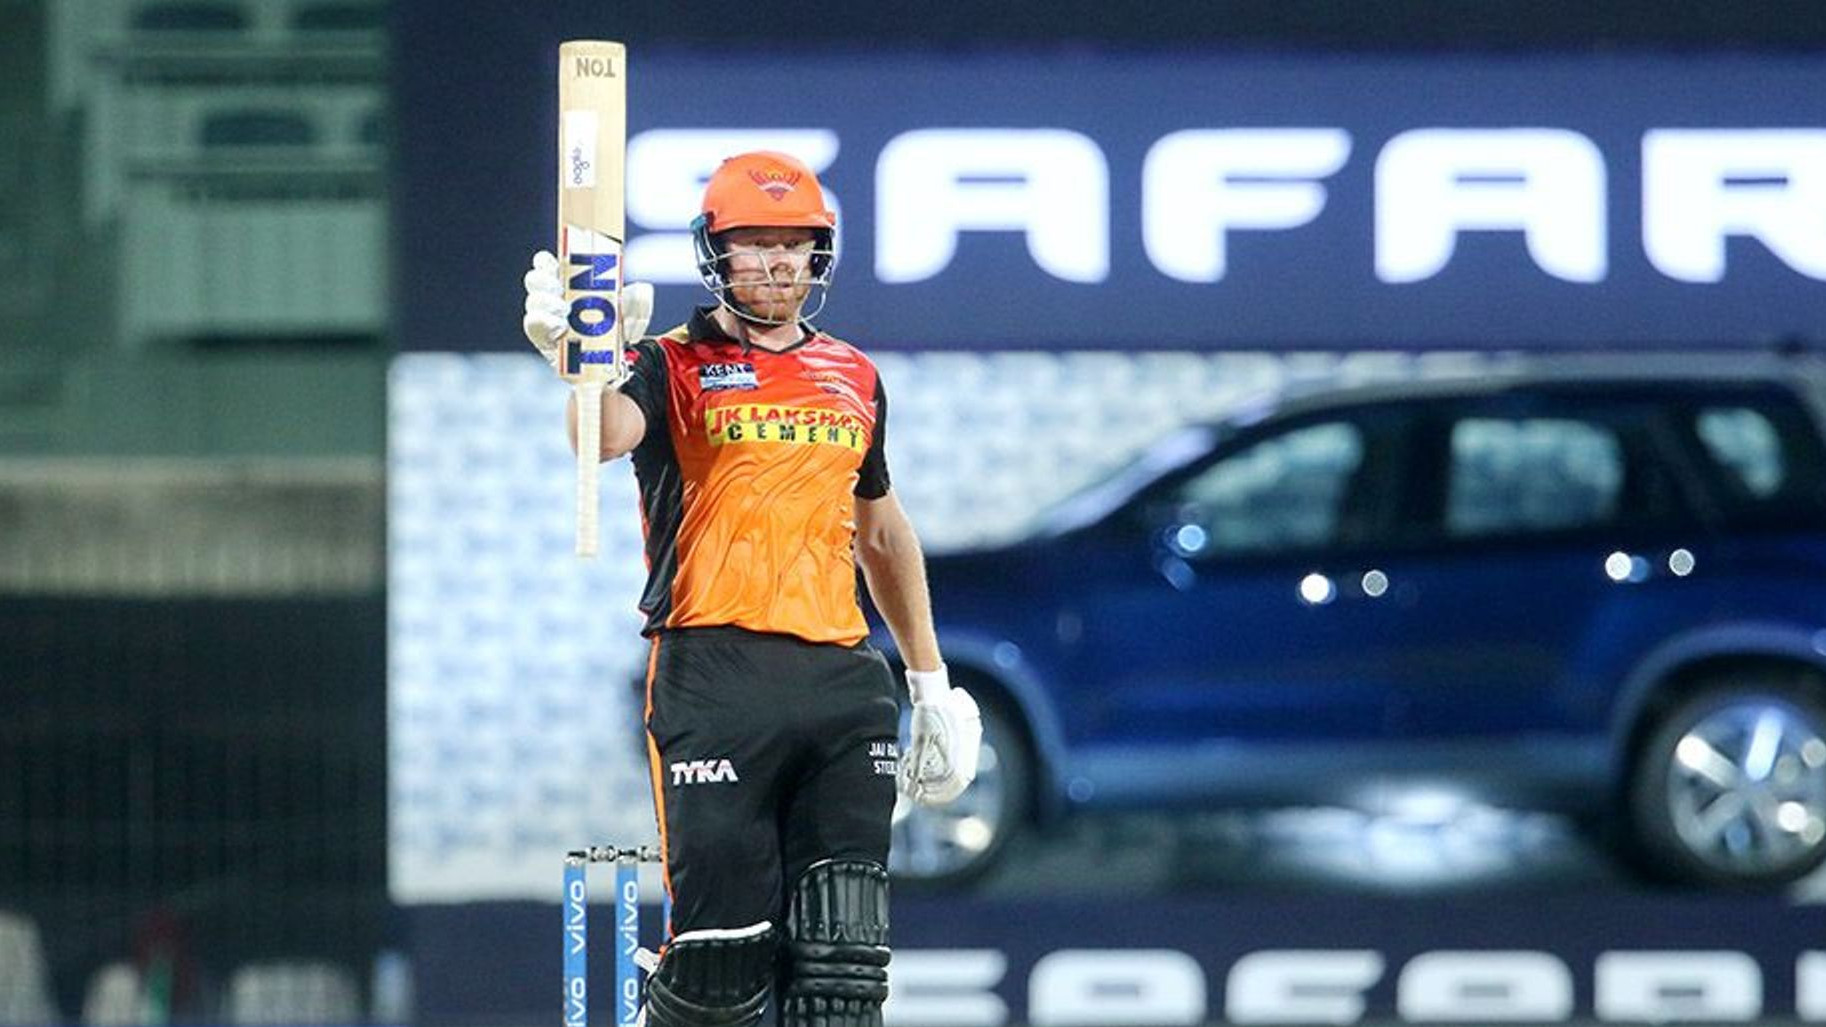 IPL 2021: Jonny Bairstow's 63* powers SRH to their first win in IPL 14, beat PBKS by 9 wickets